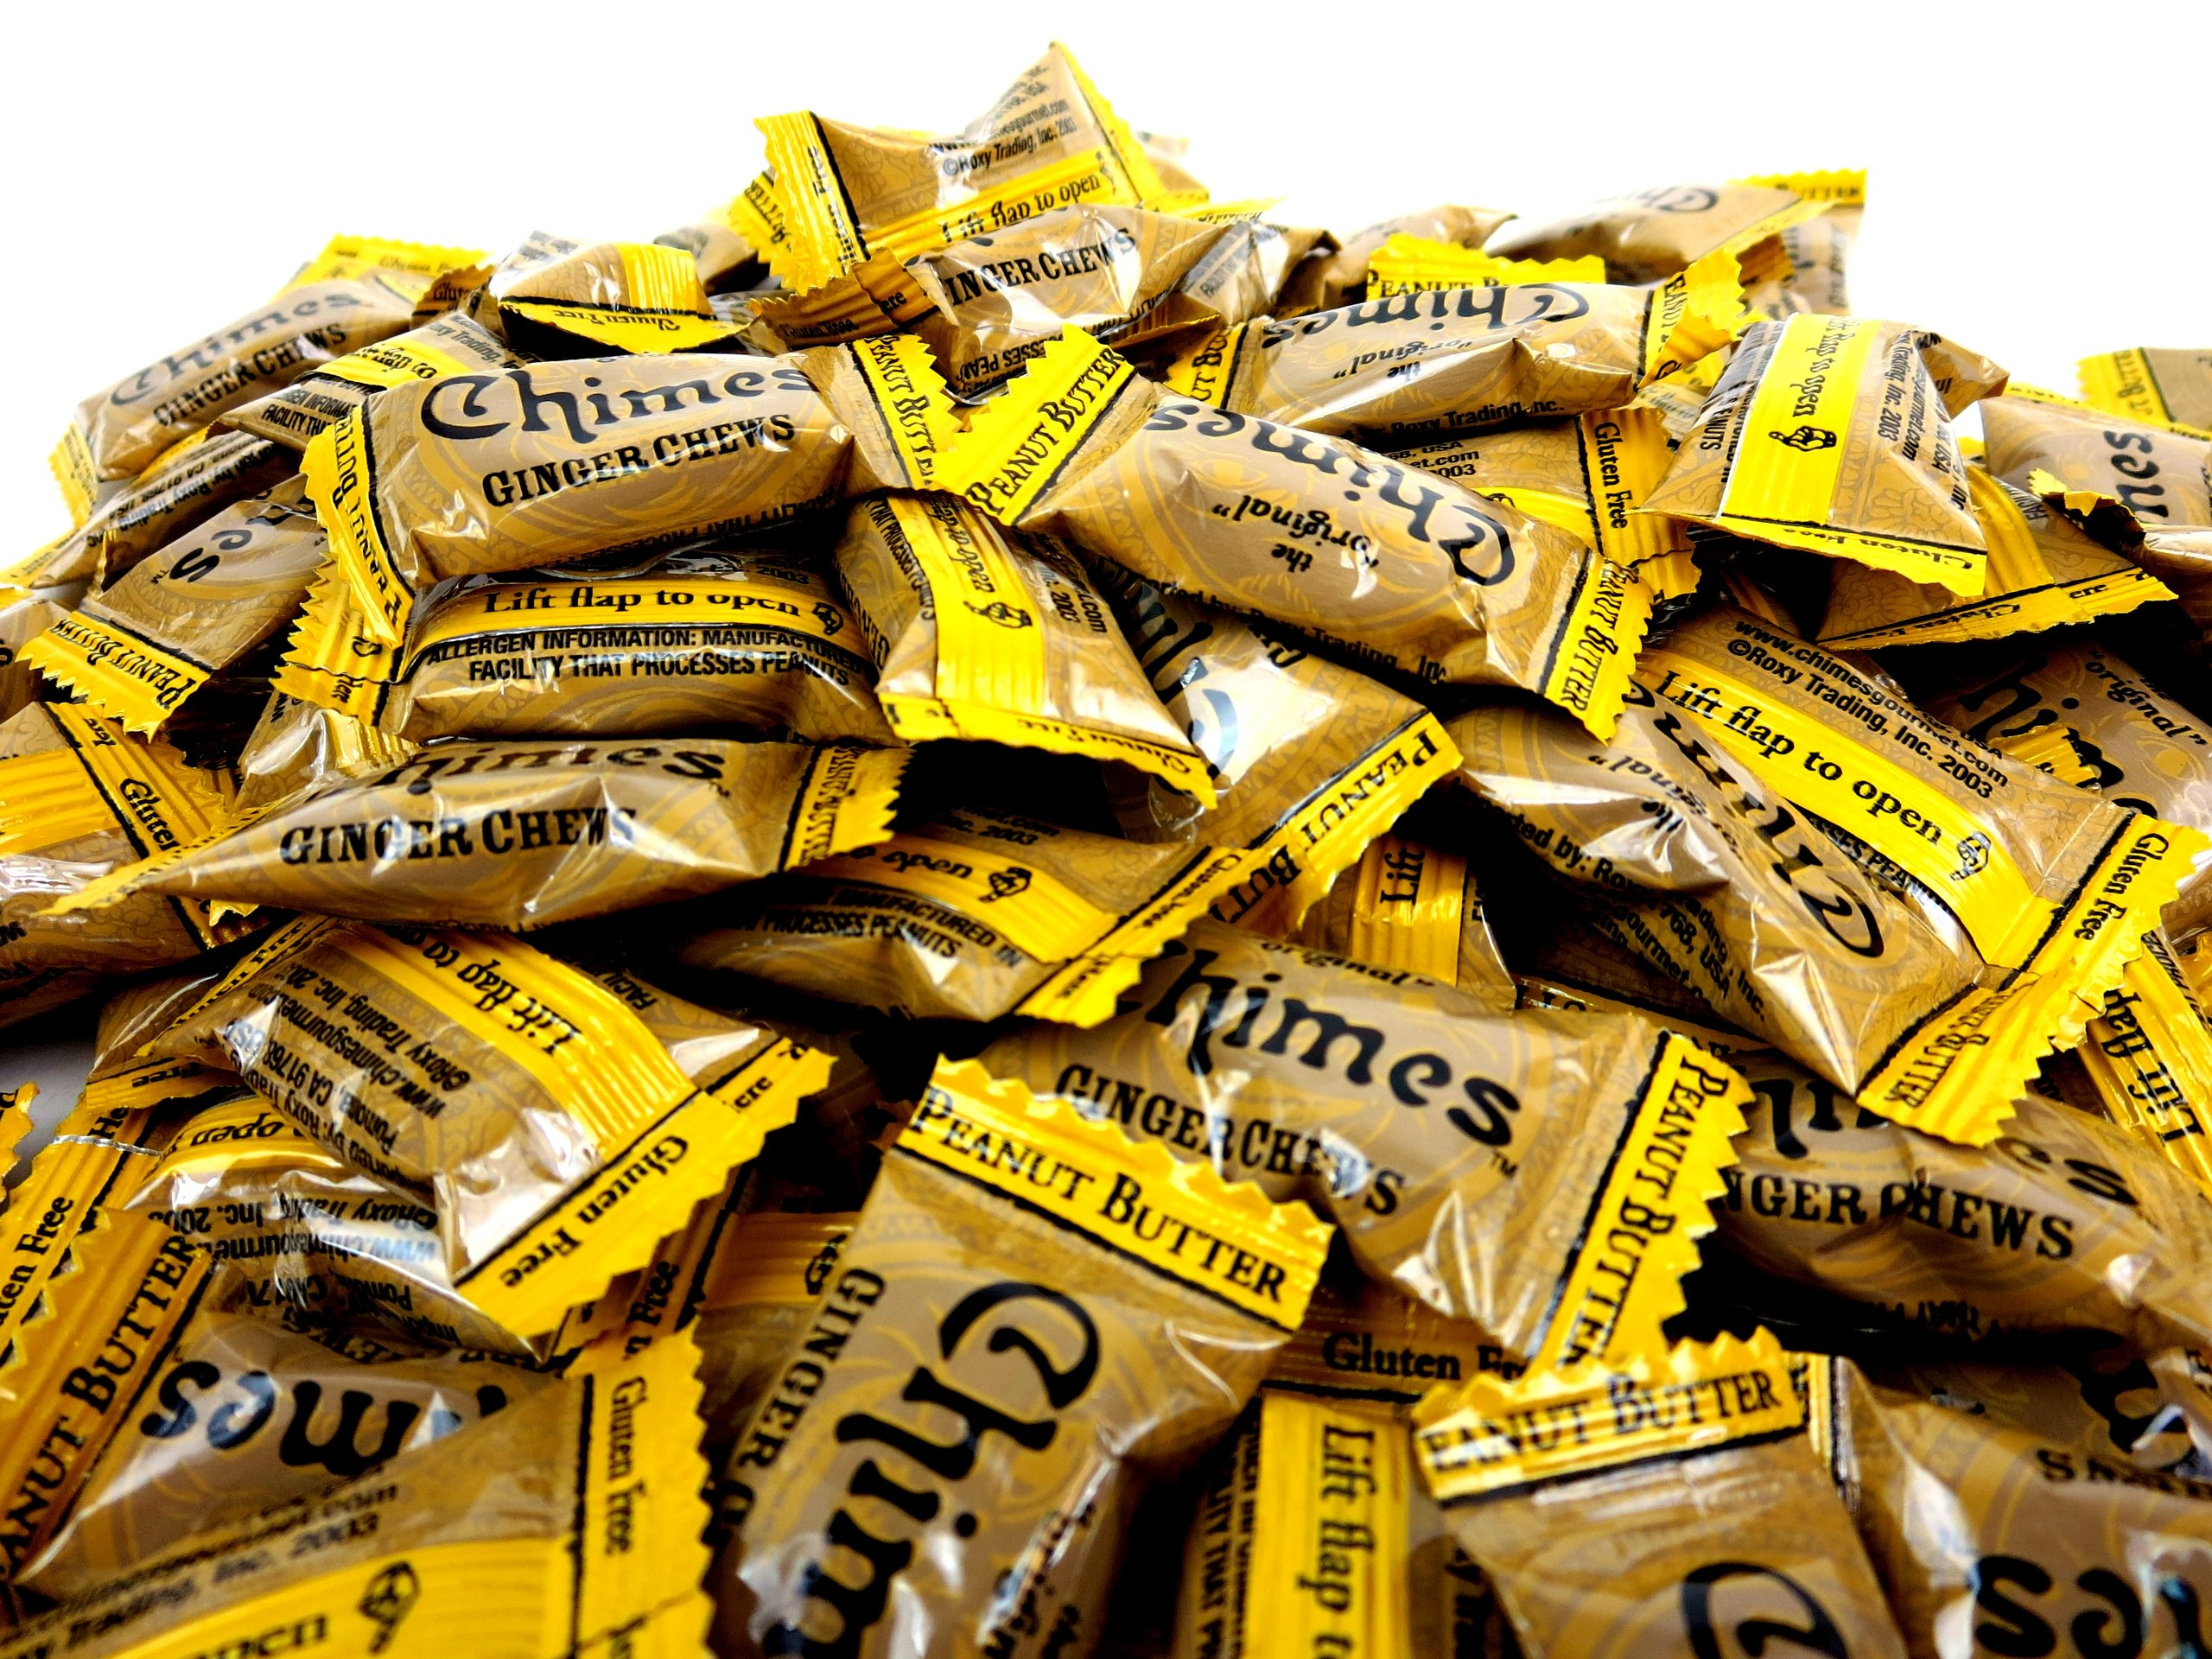 Chimes Peanut Butter Ginger Chews, 1 lb Bag in a Gift Box